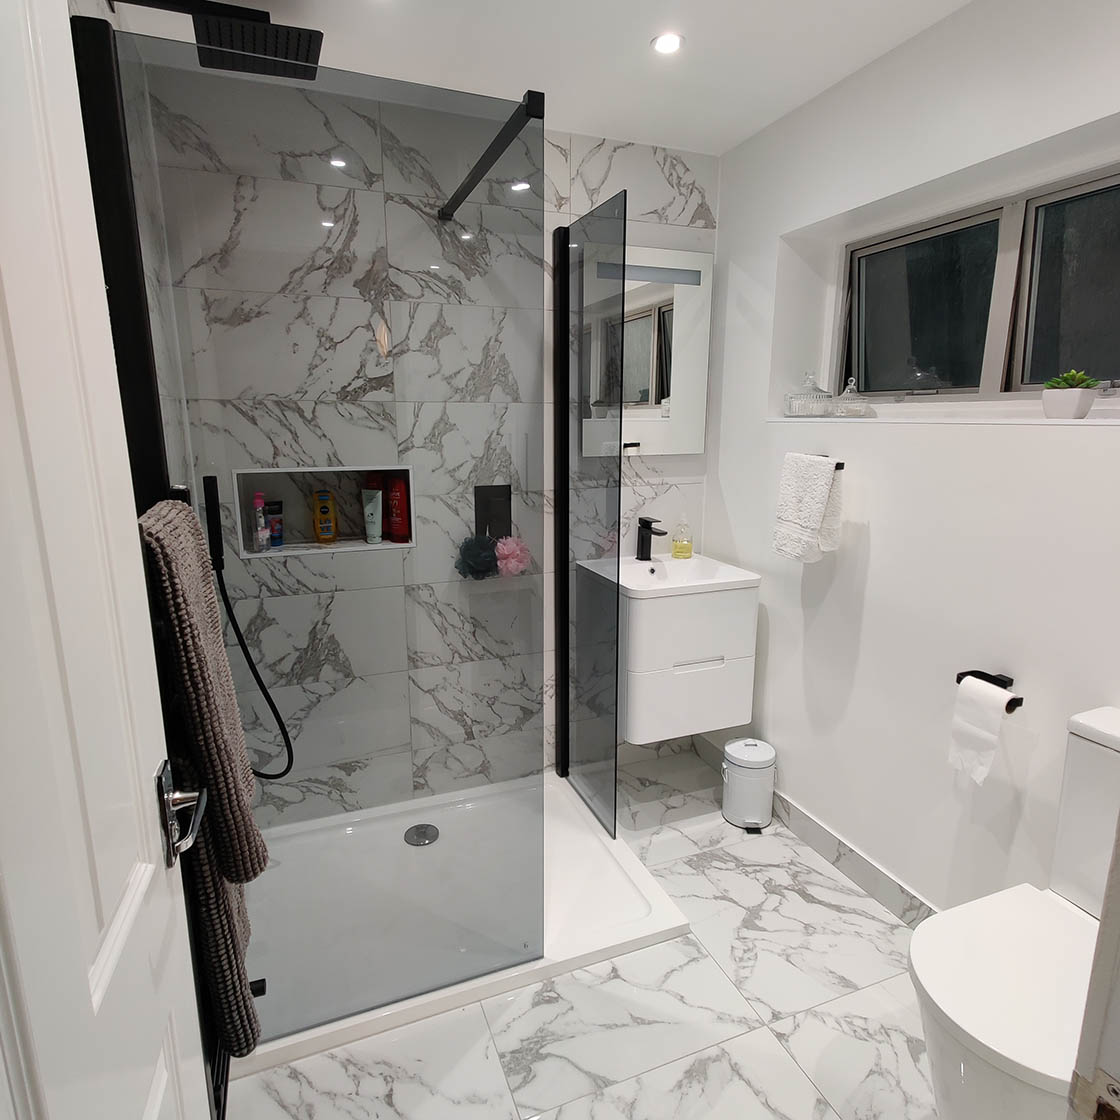 New Bathroom Renovation Project in Crawley - Scotts Road